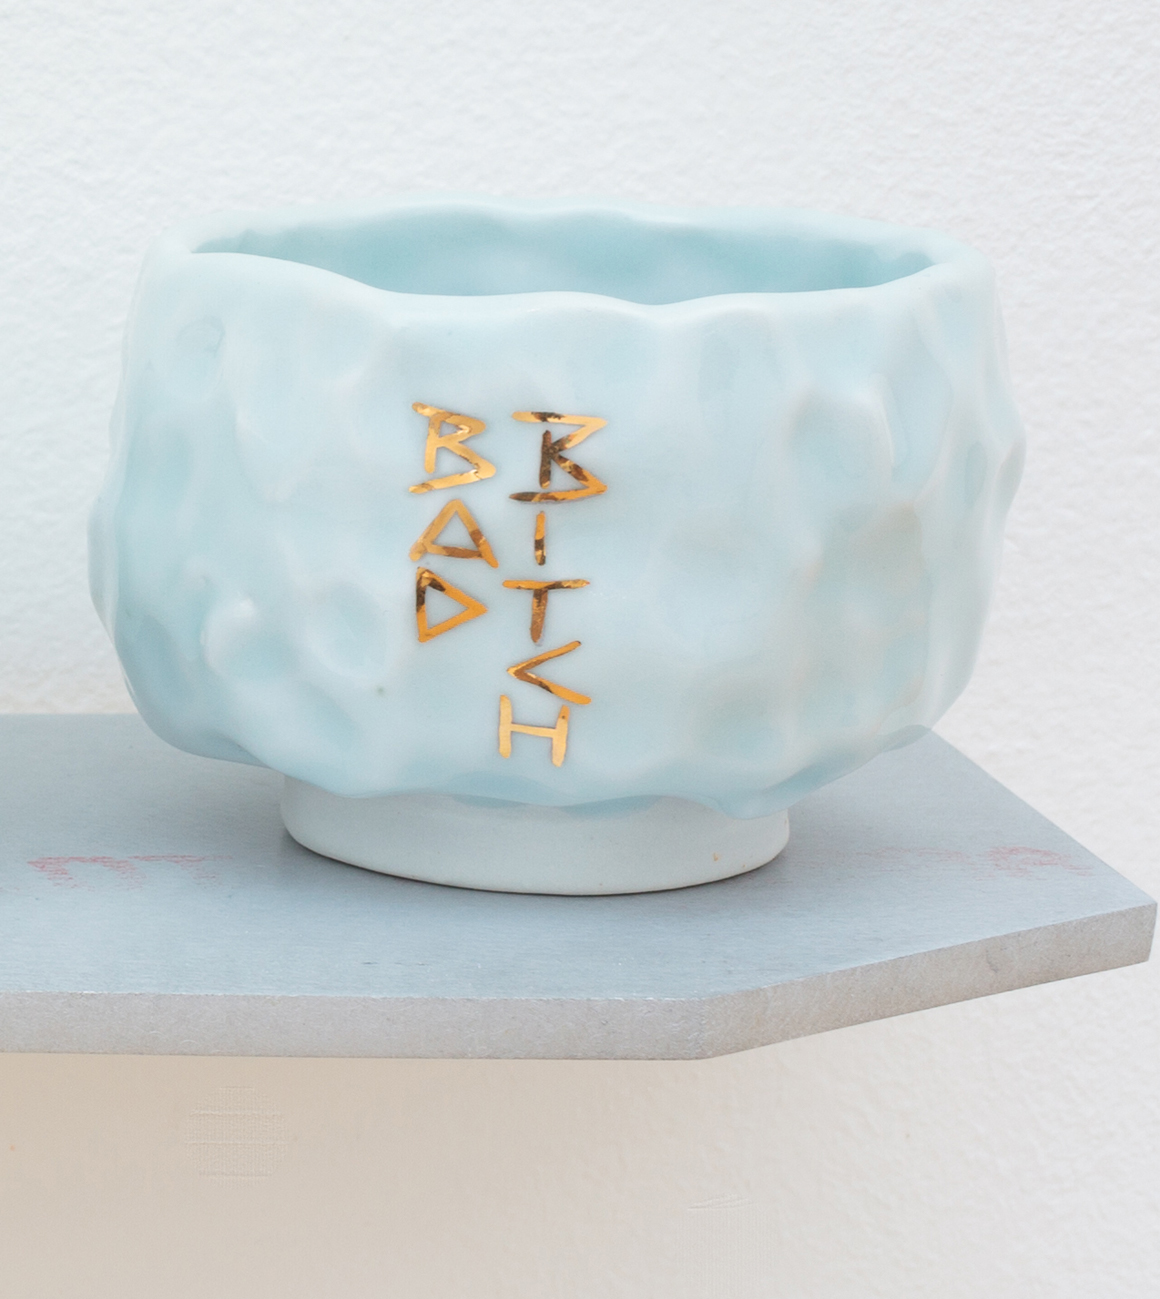 "<p><span class=""name"">Patrice Renee Washington</span><br><em>Bad Bitch Cup (1)</em><span class='media'>Glazed porcelain, gold luster, aluminum, Sculpey clay</span>2.5 x 3 x 3 in (6.4 x 7.6 x 7.6 cm)<br>2016<br><a class='inquire' href='mailto:info@gildargallery.com?subject=Artwork Inquiry PWAS0002&body=I am interested in finding out more about Bad Bitch Cup (1) by Patrice Renee Washington'>Inquire</a></p>"